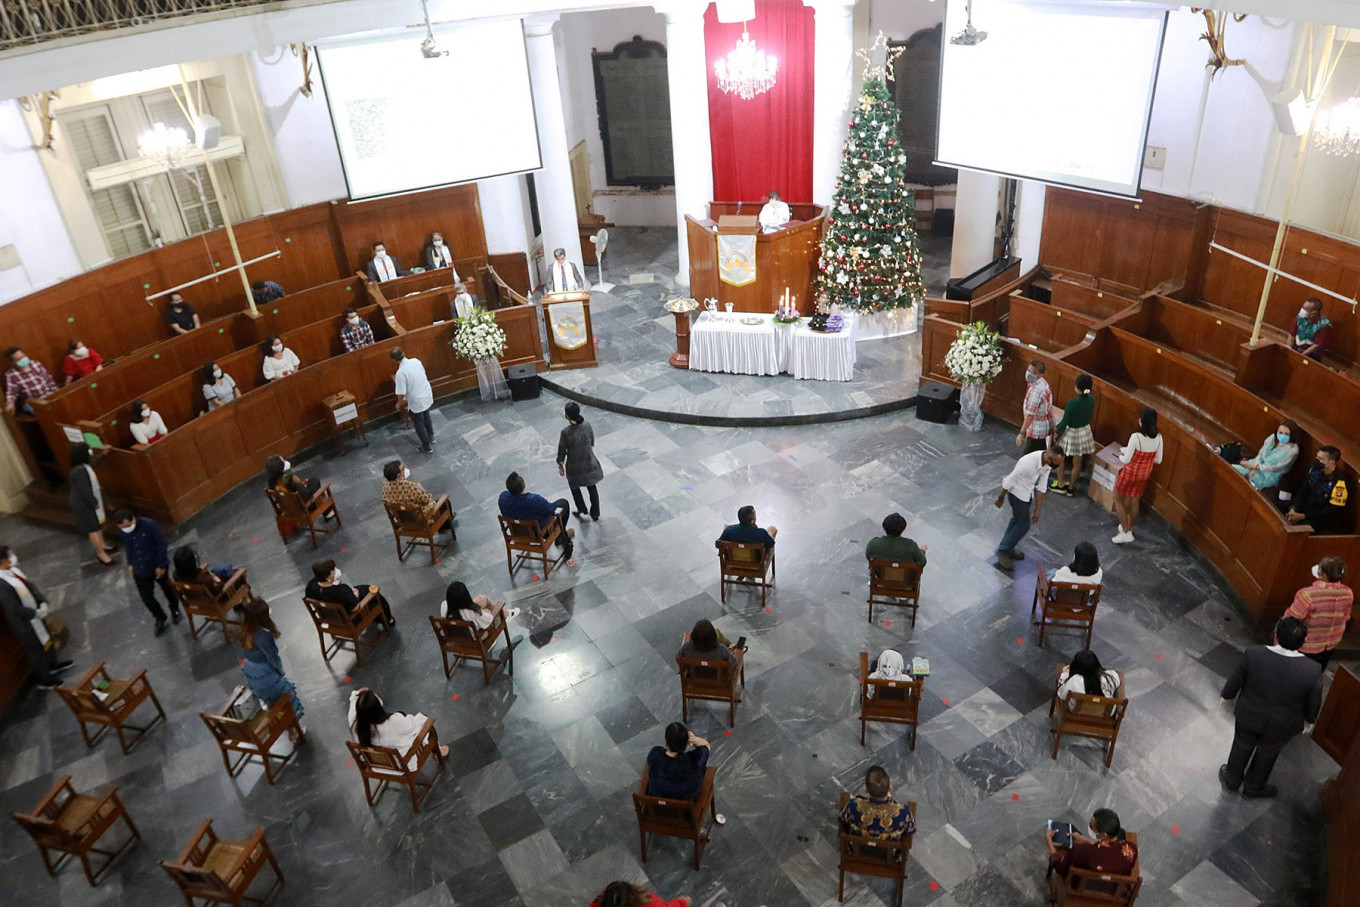 Christians attend a Christmas Eve's service at Immanuel Church in Jakarta on Dec. 24. The church only allowed 50 congregation members to attend the service and required them to adhere to the strict health protocol. JP/Dhoni Setiawan